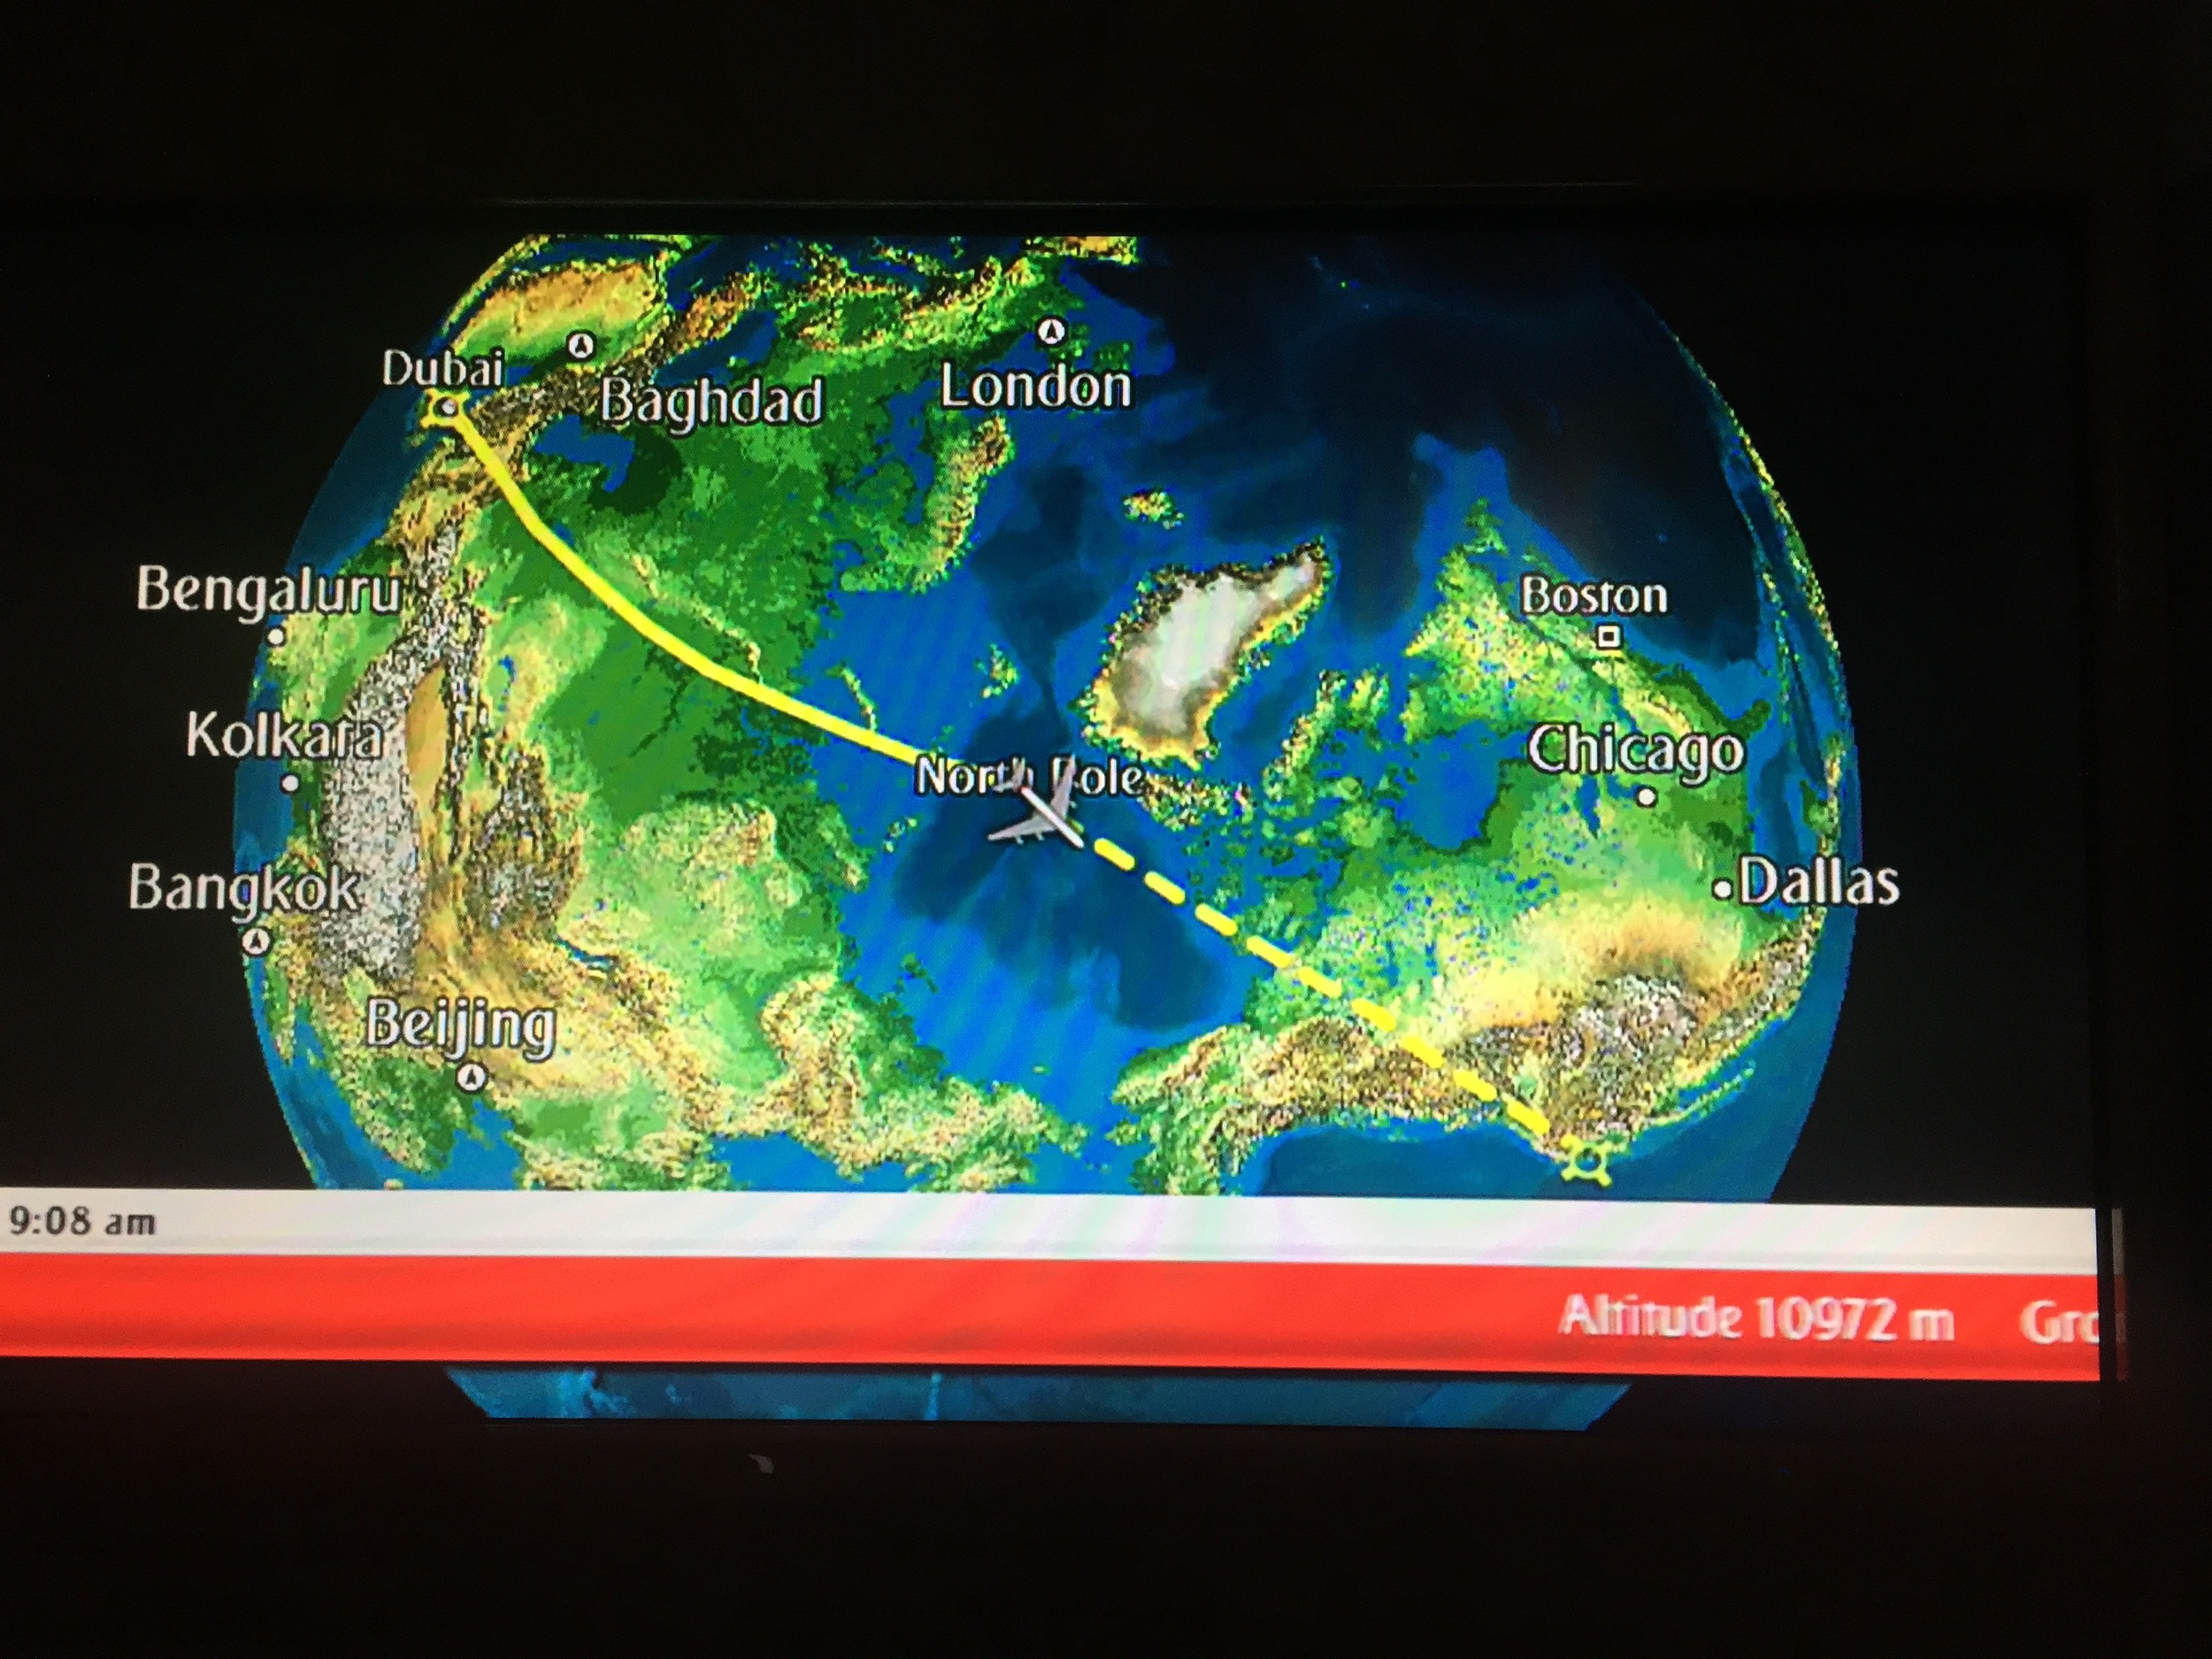 Over the North Pole